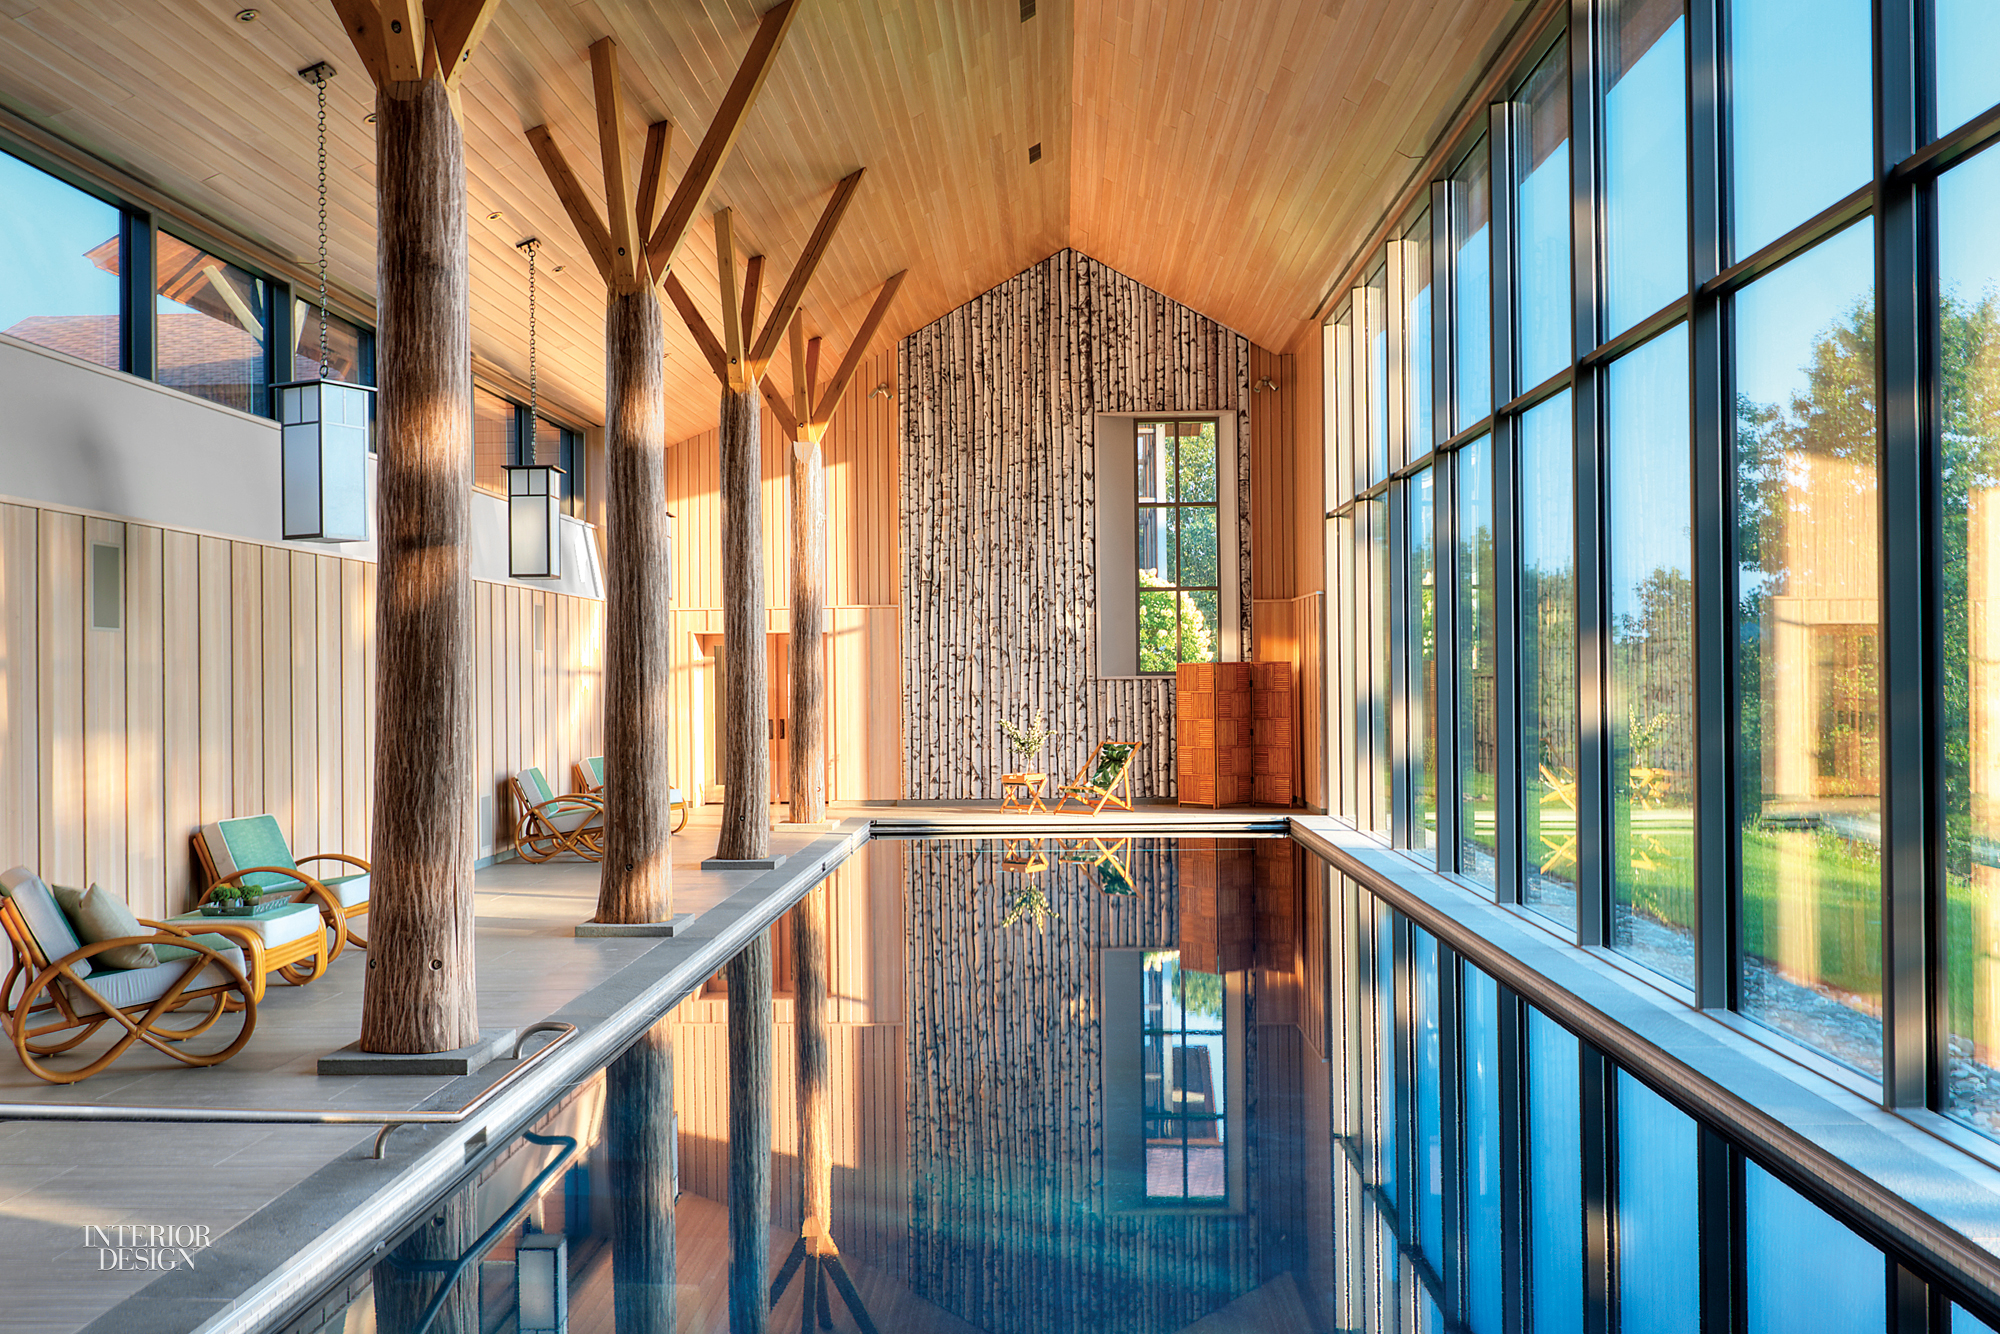 A Secret Pool House by BarlisWedlick Architects